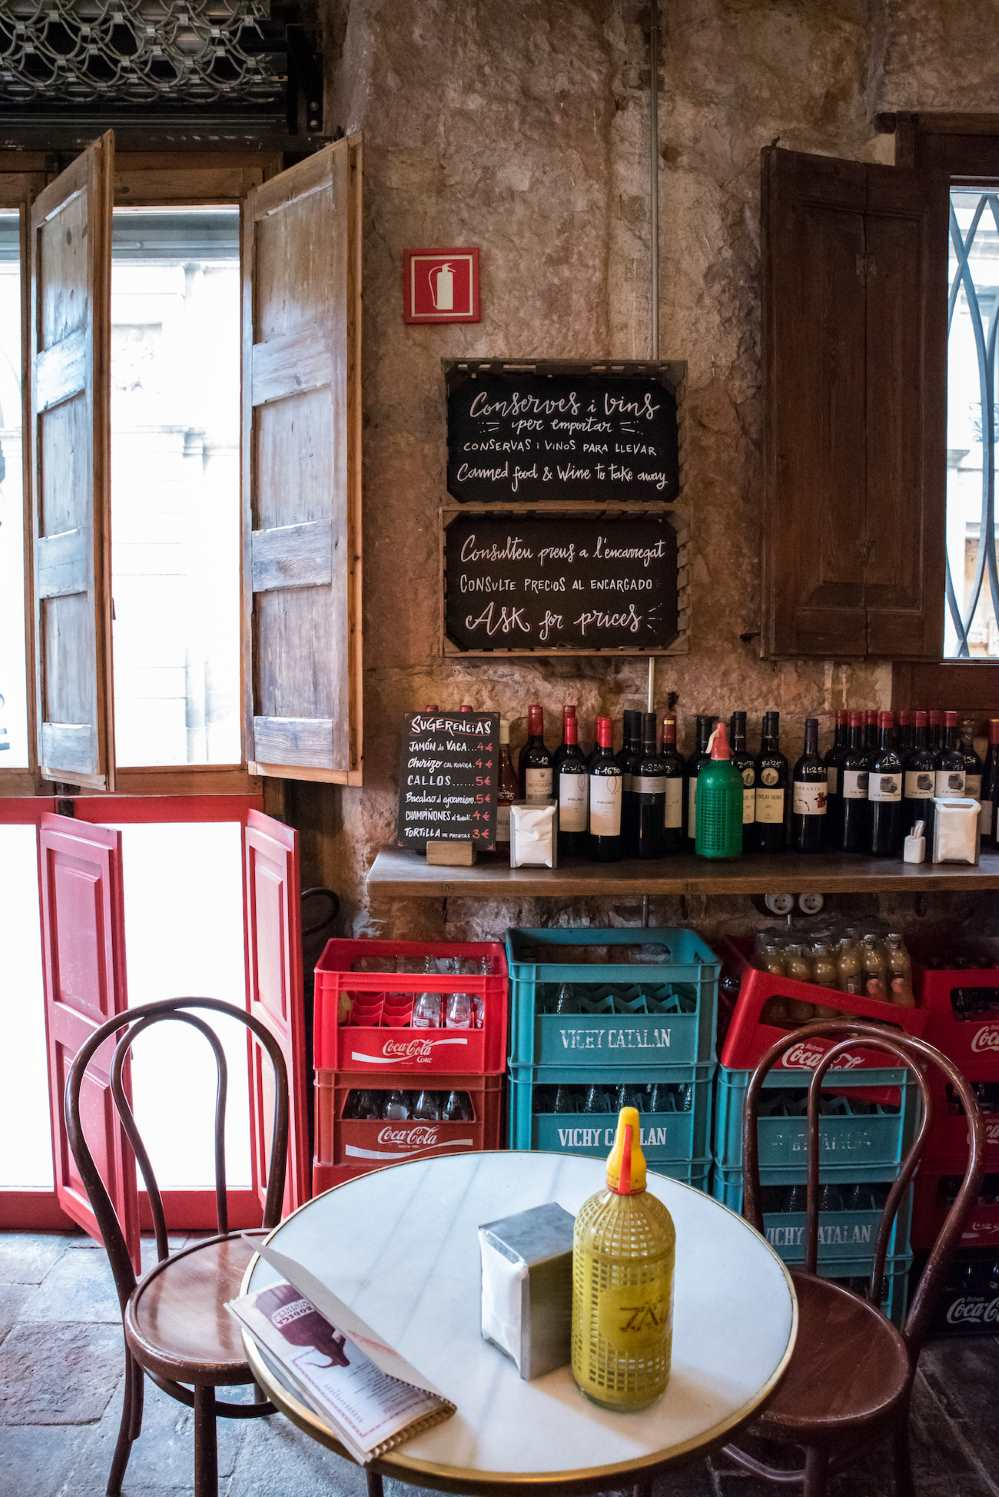 A small bar in Barcelona - Photo by Ben Holbrook